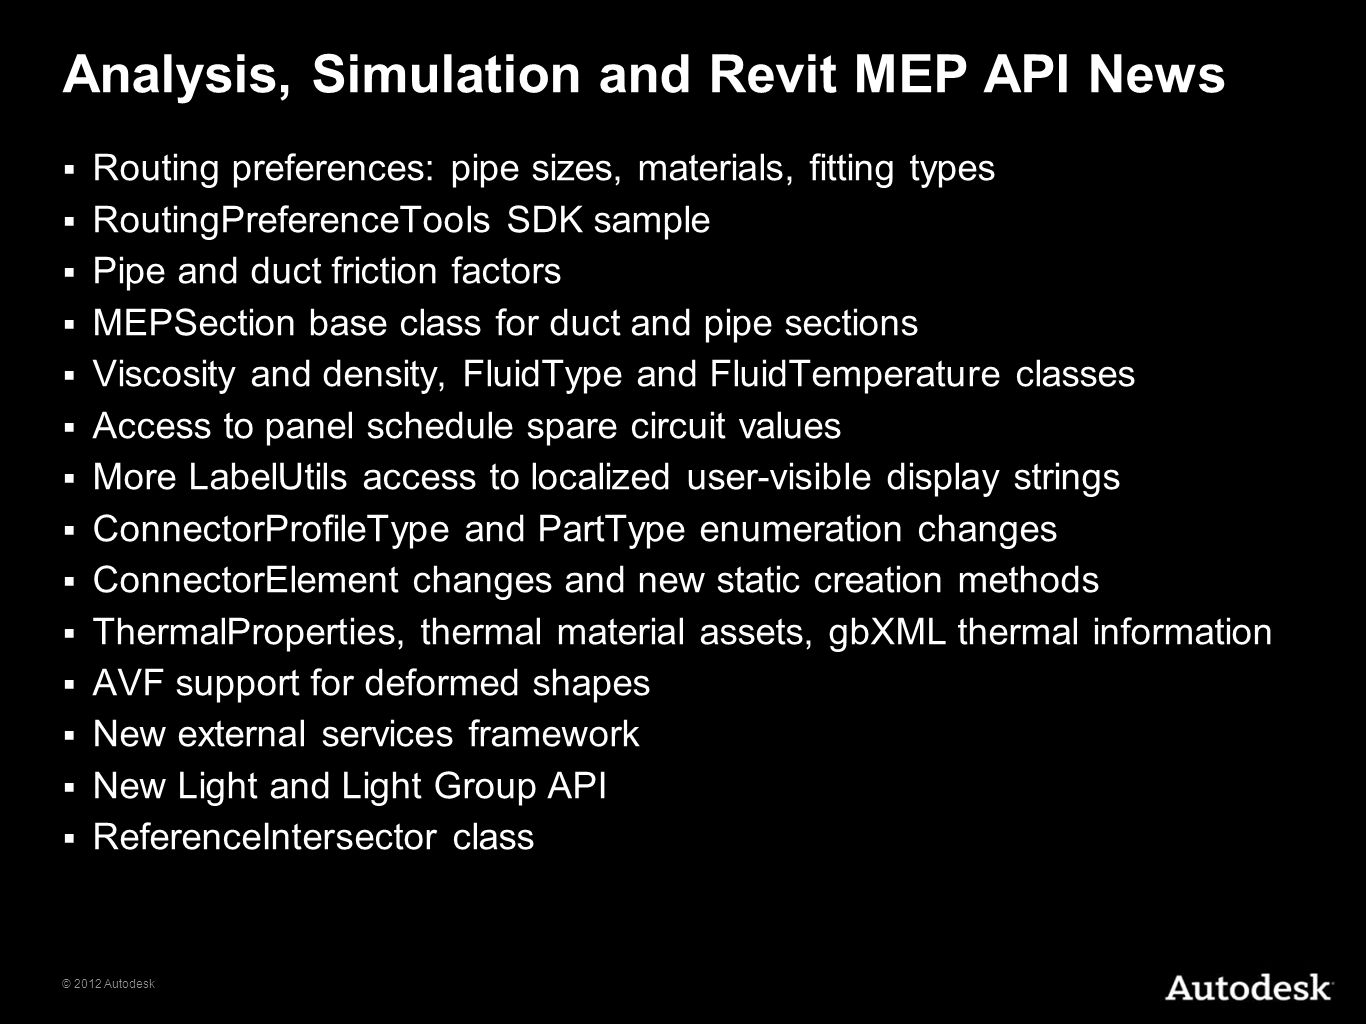 Analysis, Simulation and Revit MEP API News